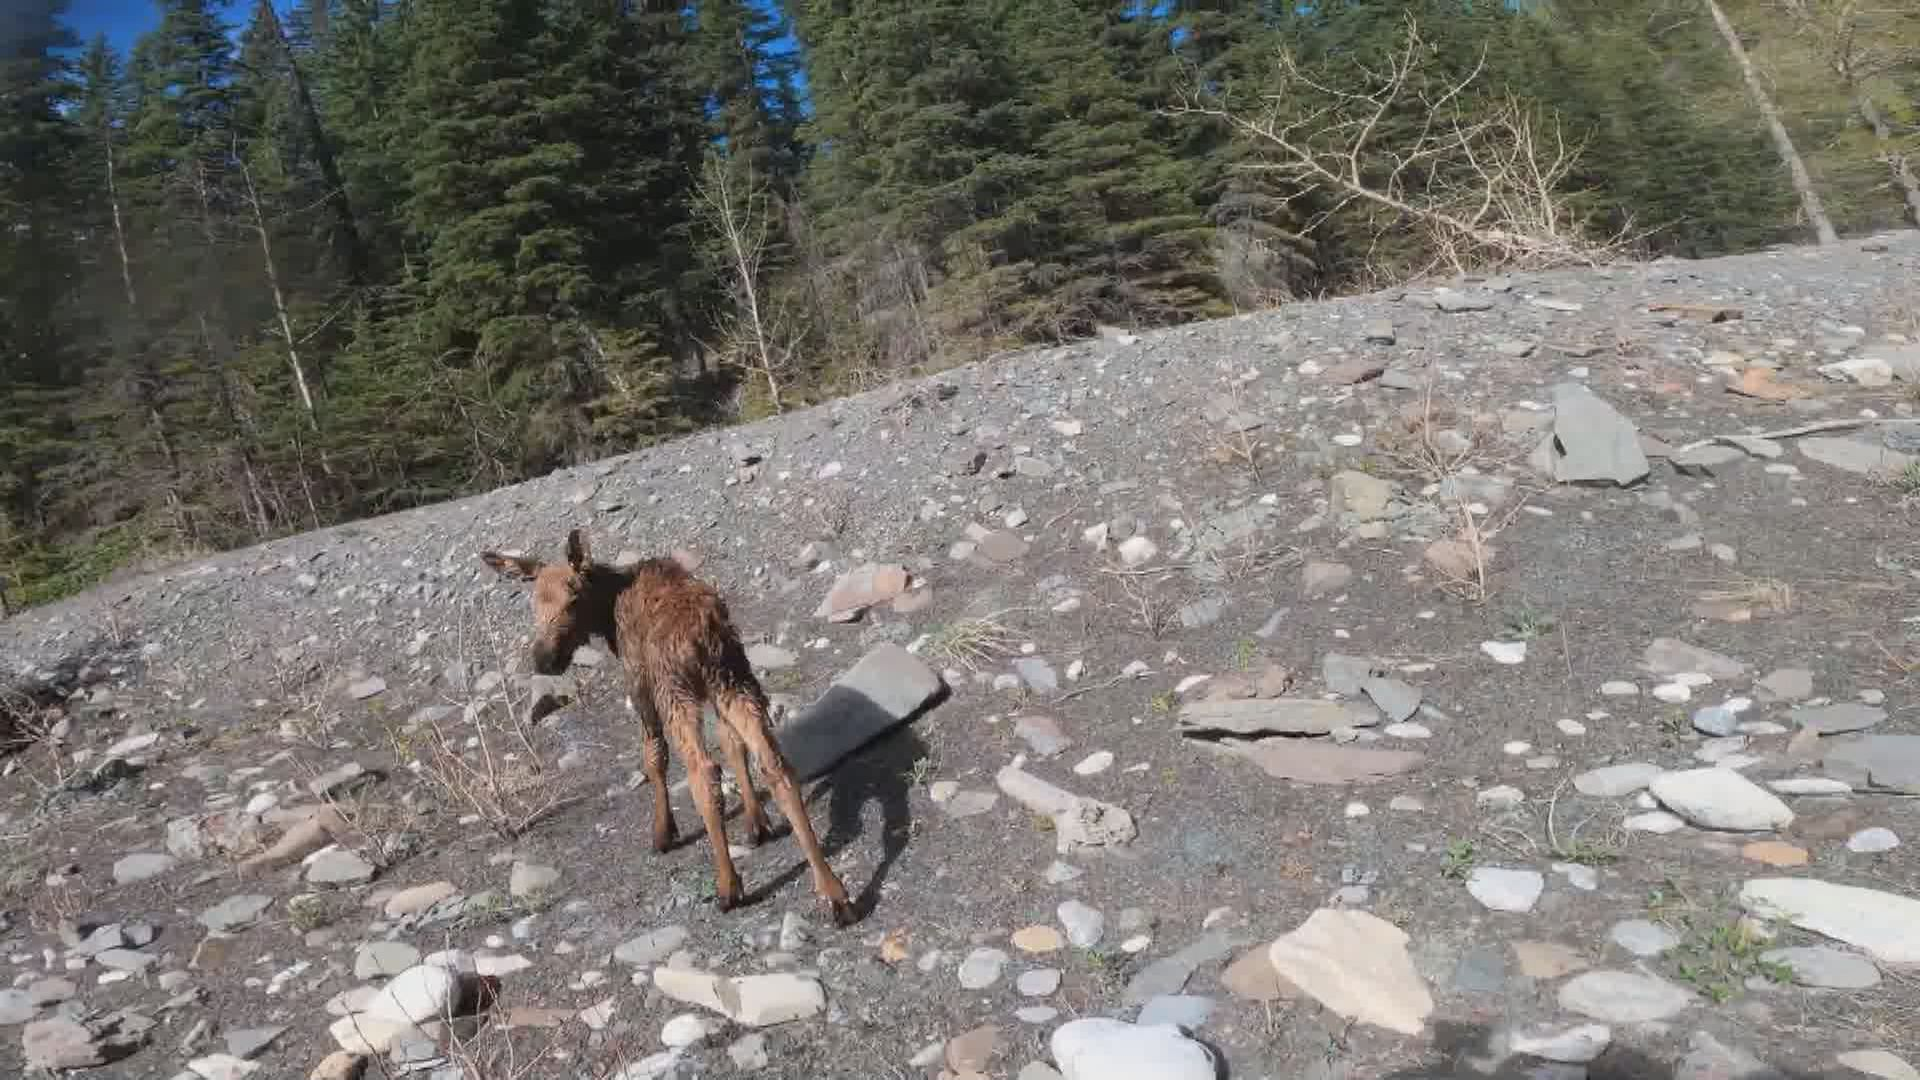 Mindy the moose after being rescued.